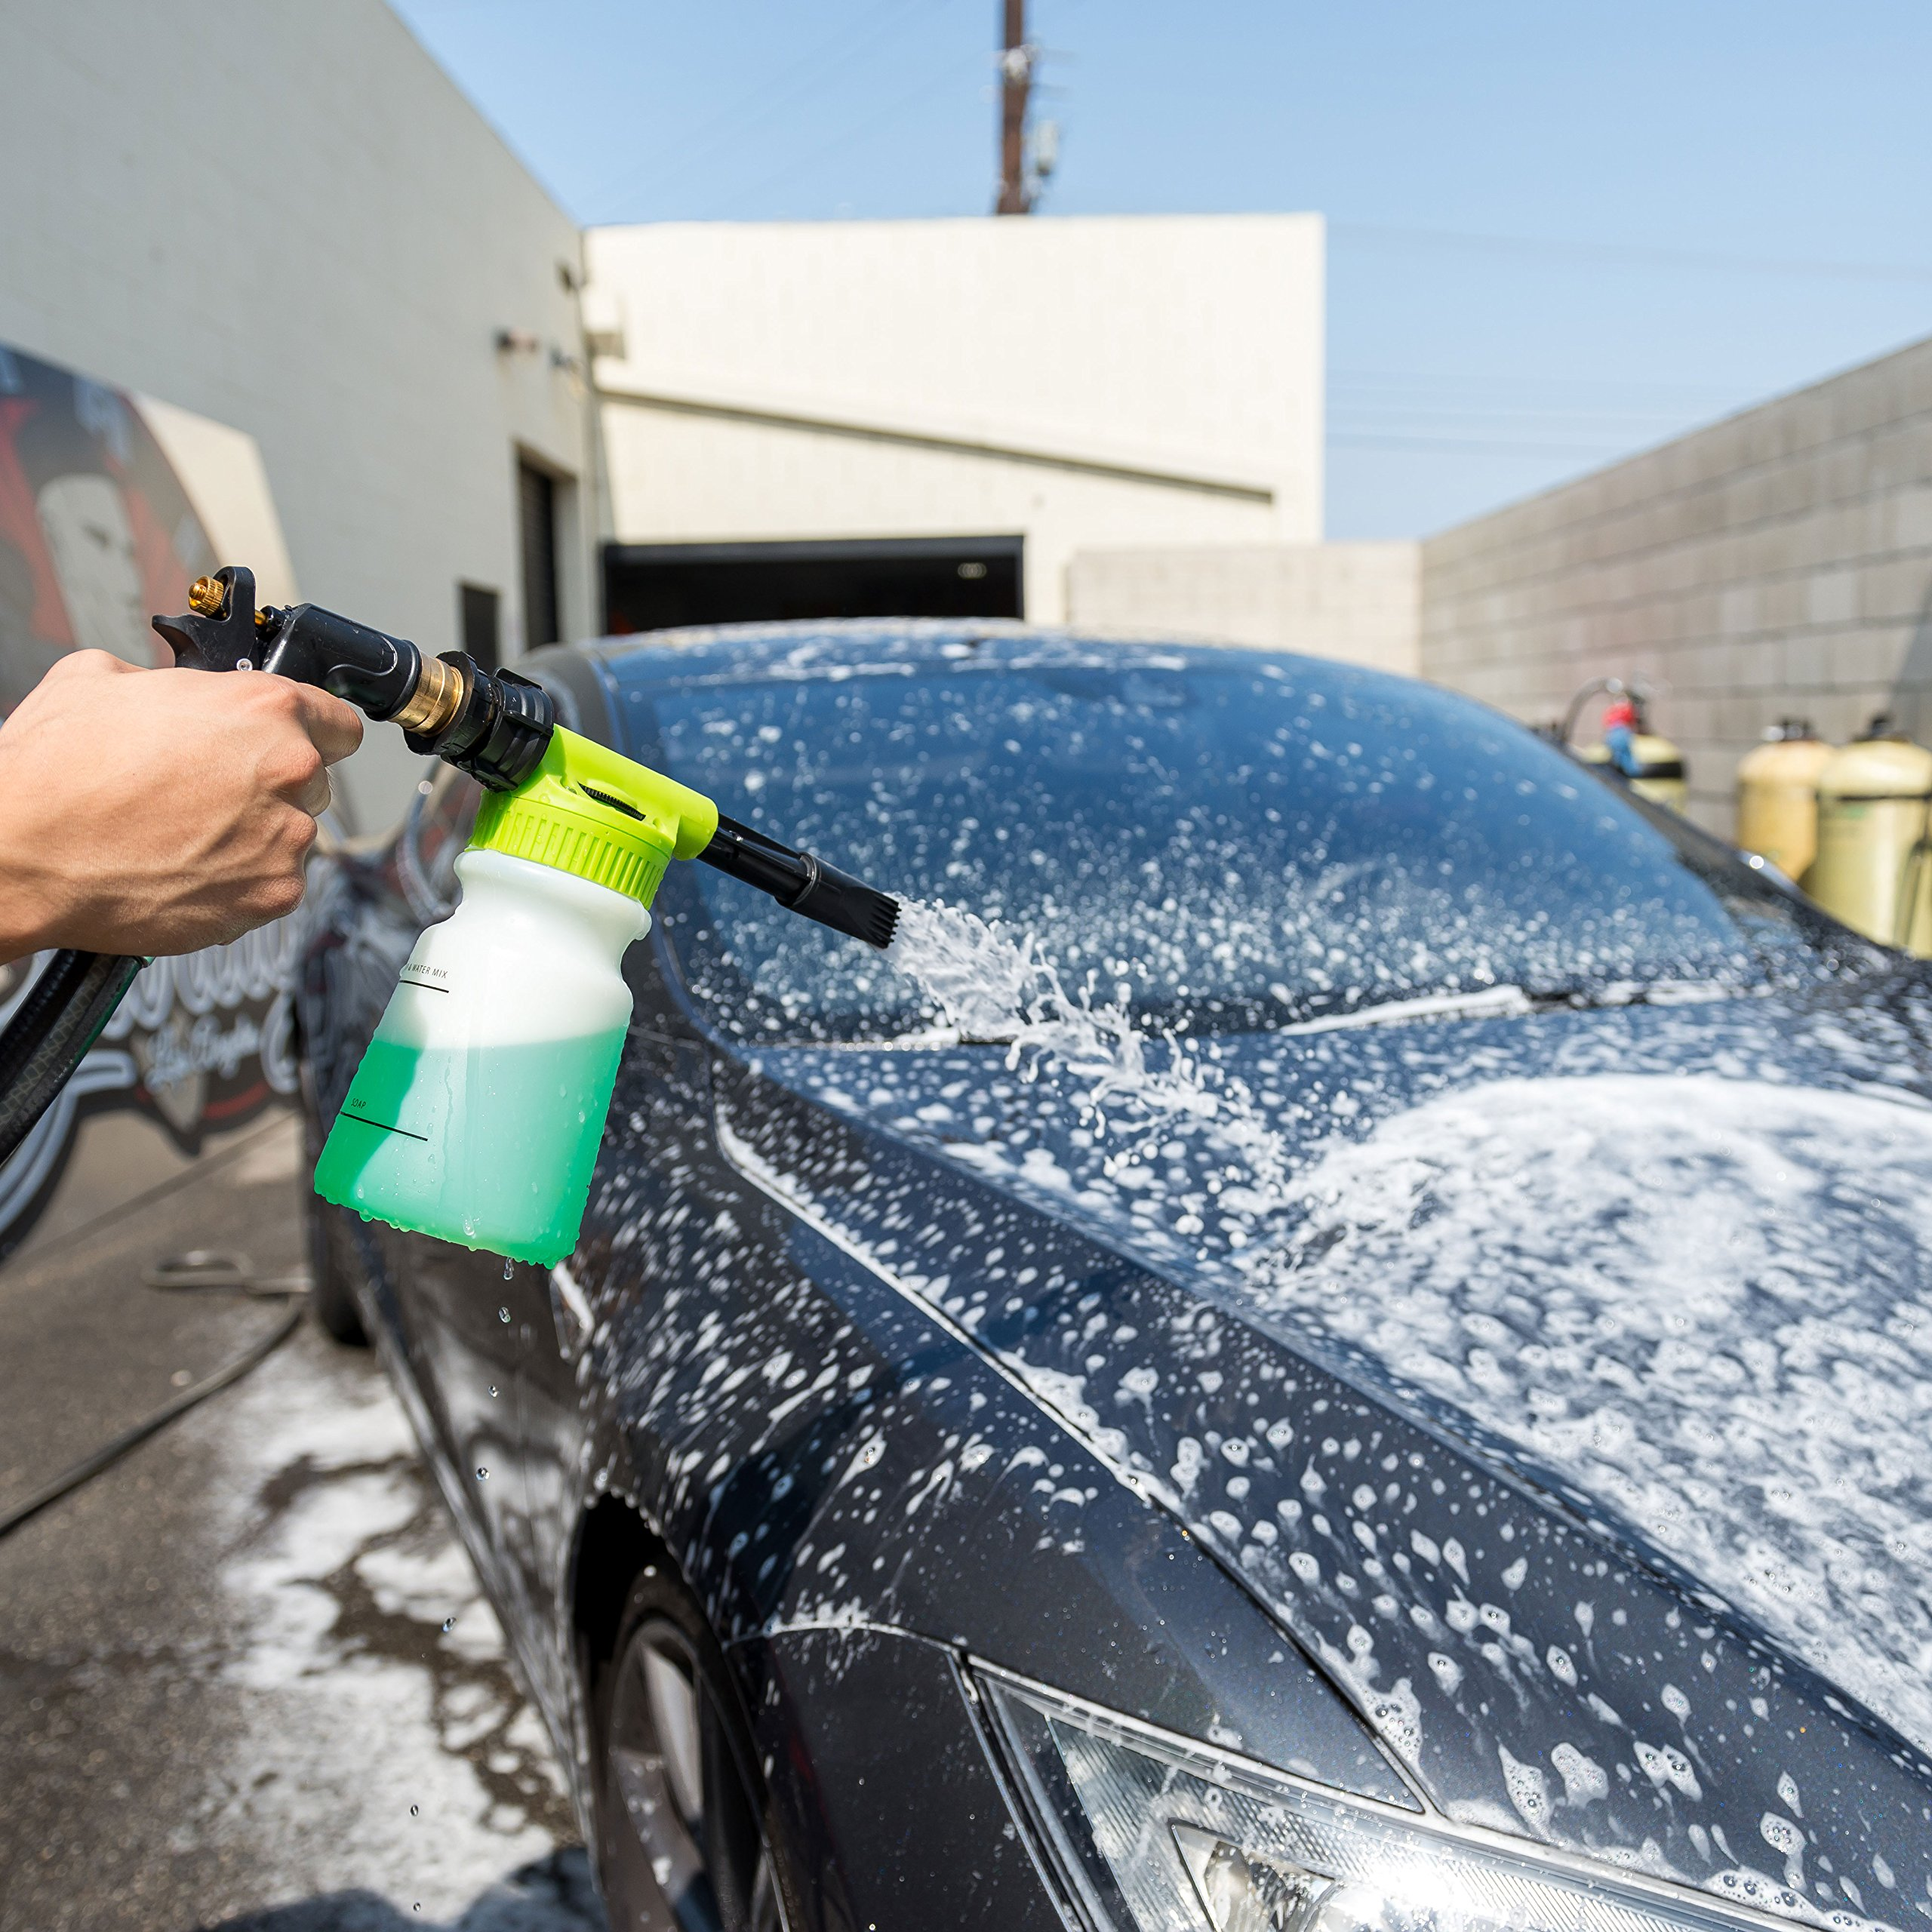 Chemical Guys Acc_326 - TORQ Foam Blaster 6 Foam Wash Gun - The Ultimate Car Wash Foamer That Connects to Any Garden Hose by Chemical Guys (Image #4)